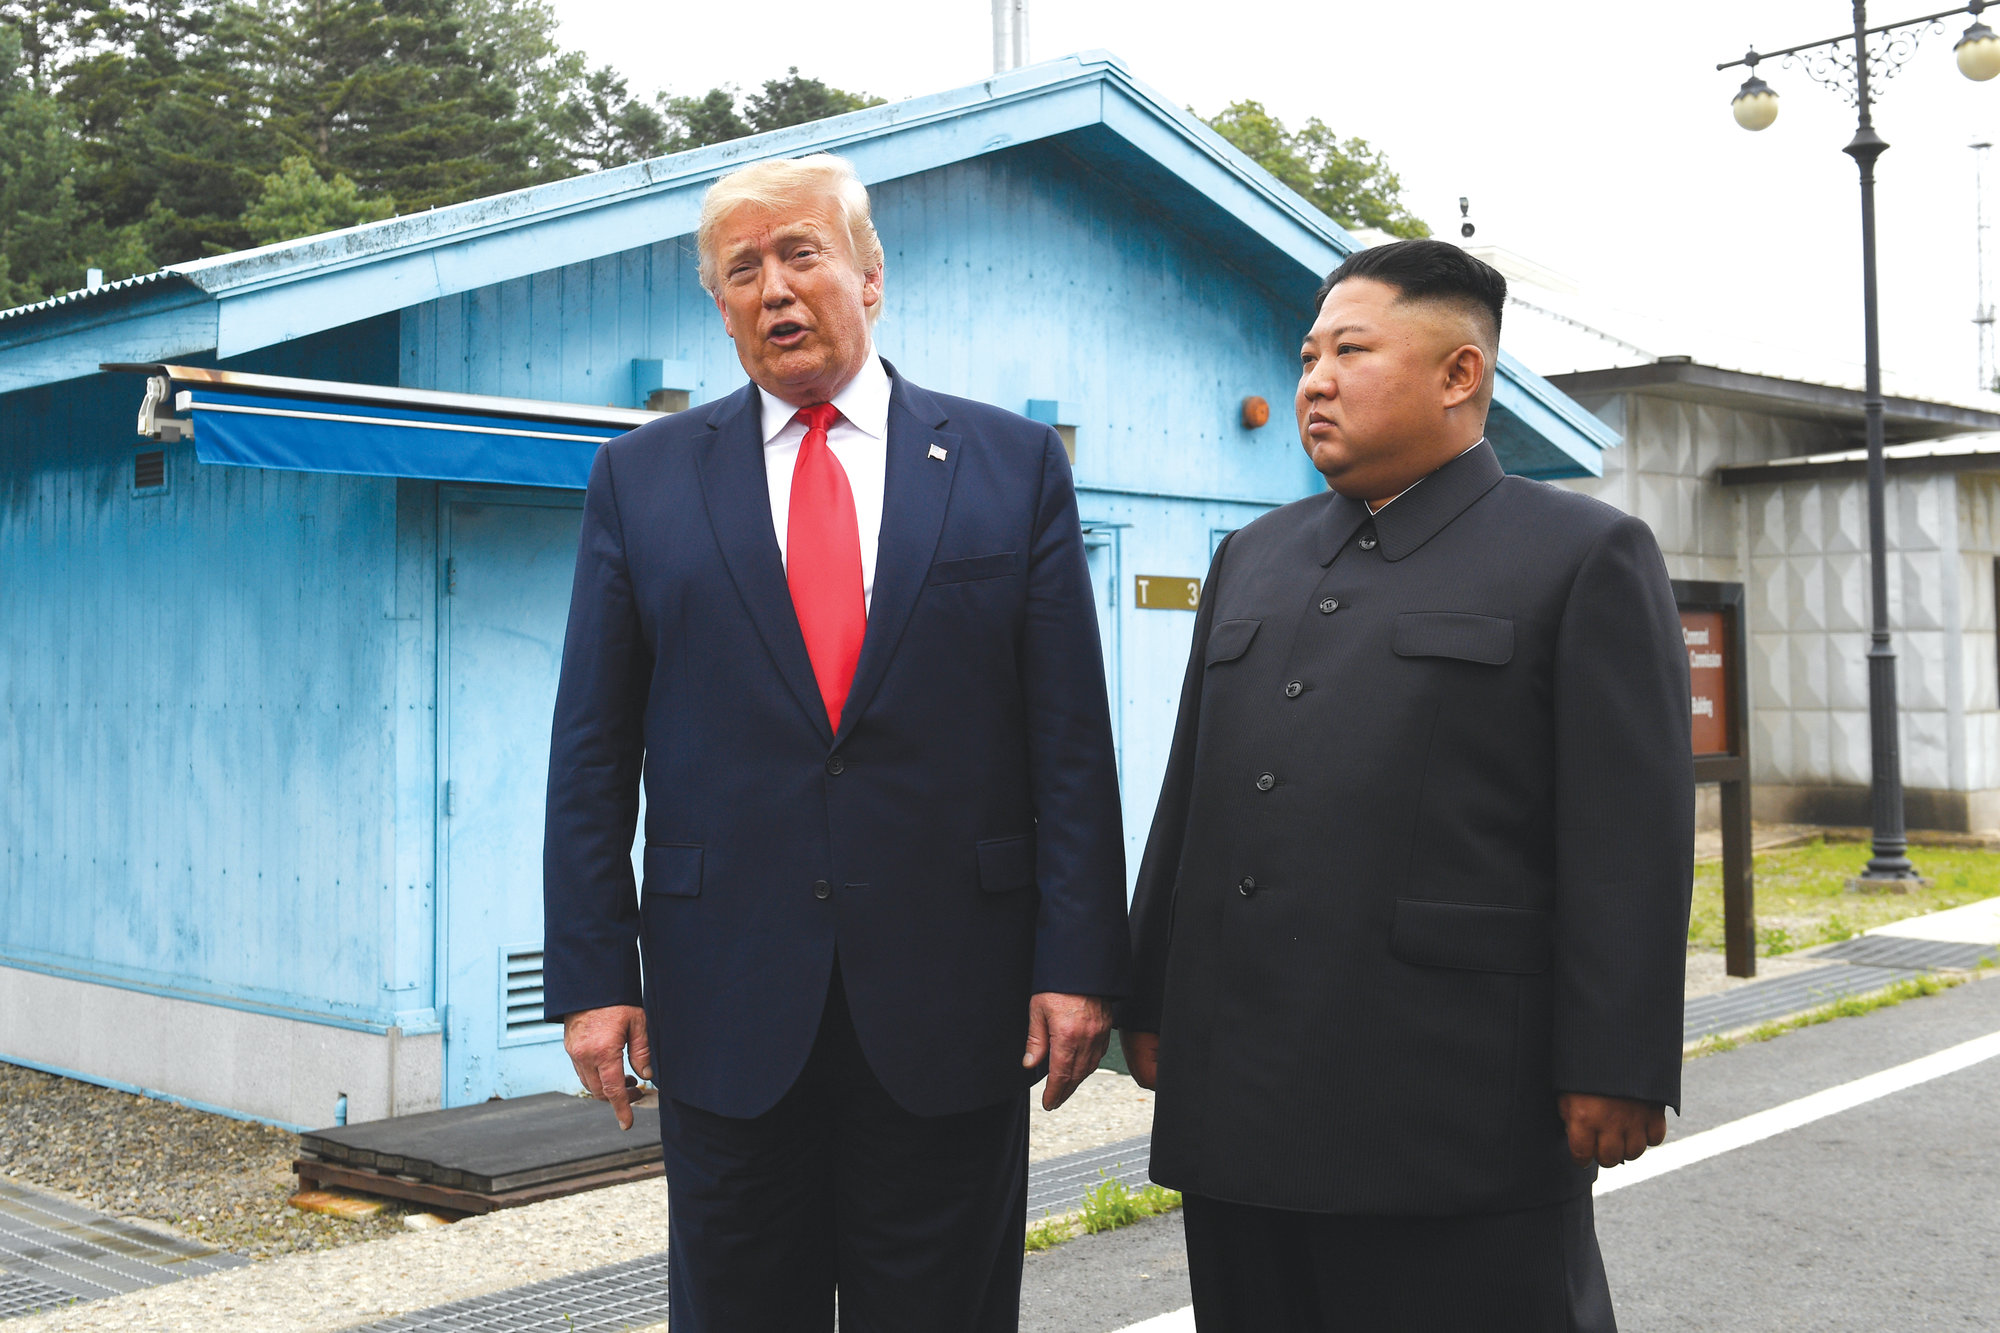 President Donald Trump meets with North Korean leader Kim Jong Un at the border village of Panmunjom in the Demilitarized Zone, South Korea, on June 30, 2019.